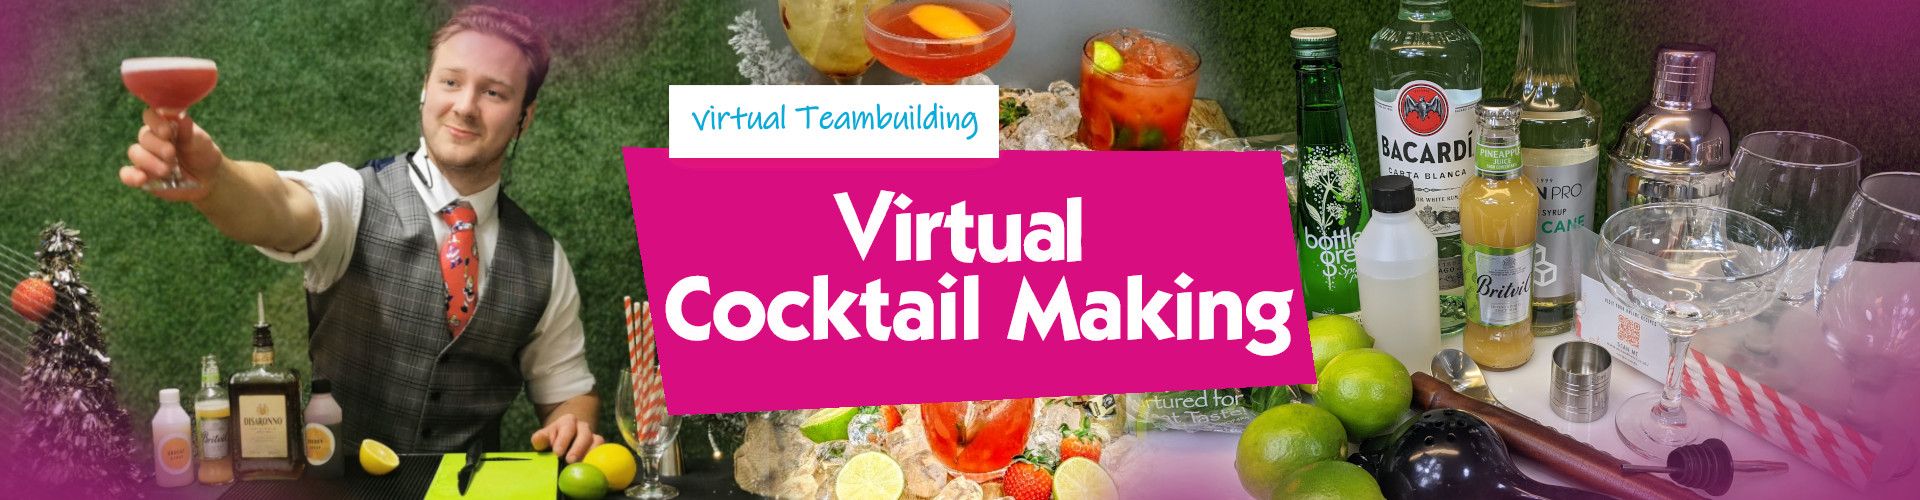 Virtual-CocktailMaking-Banner